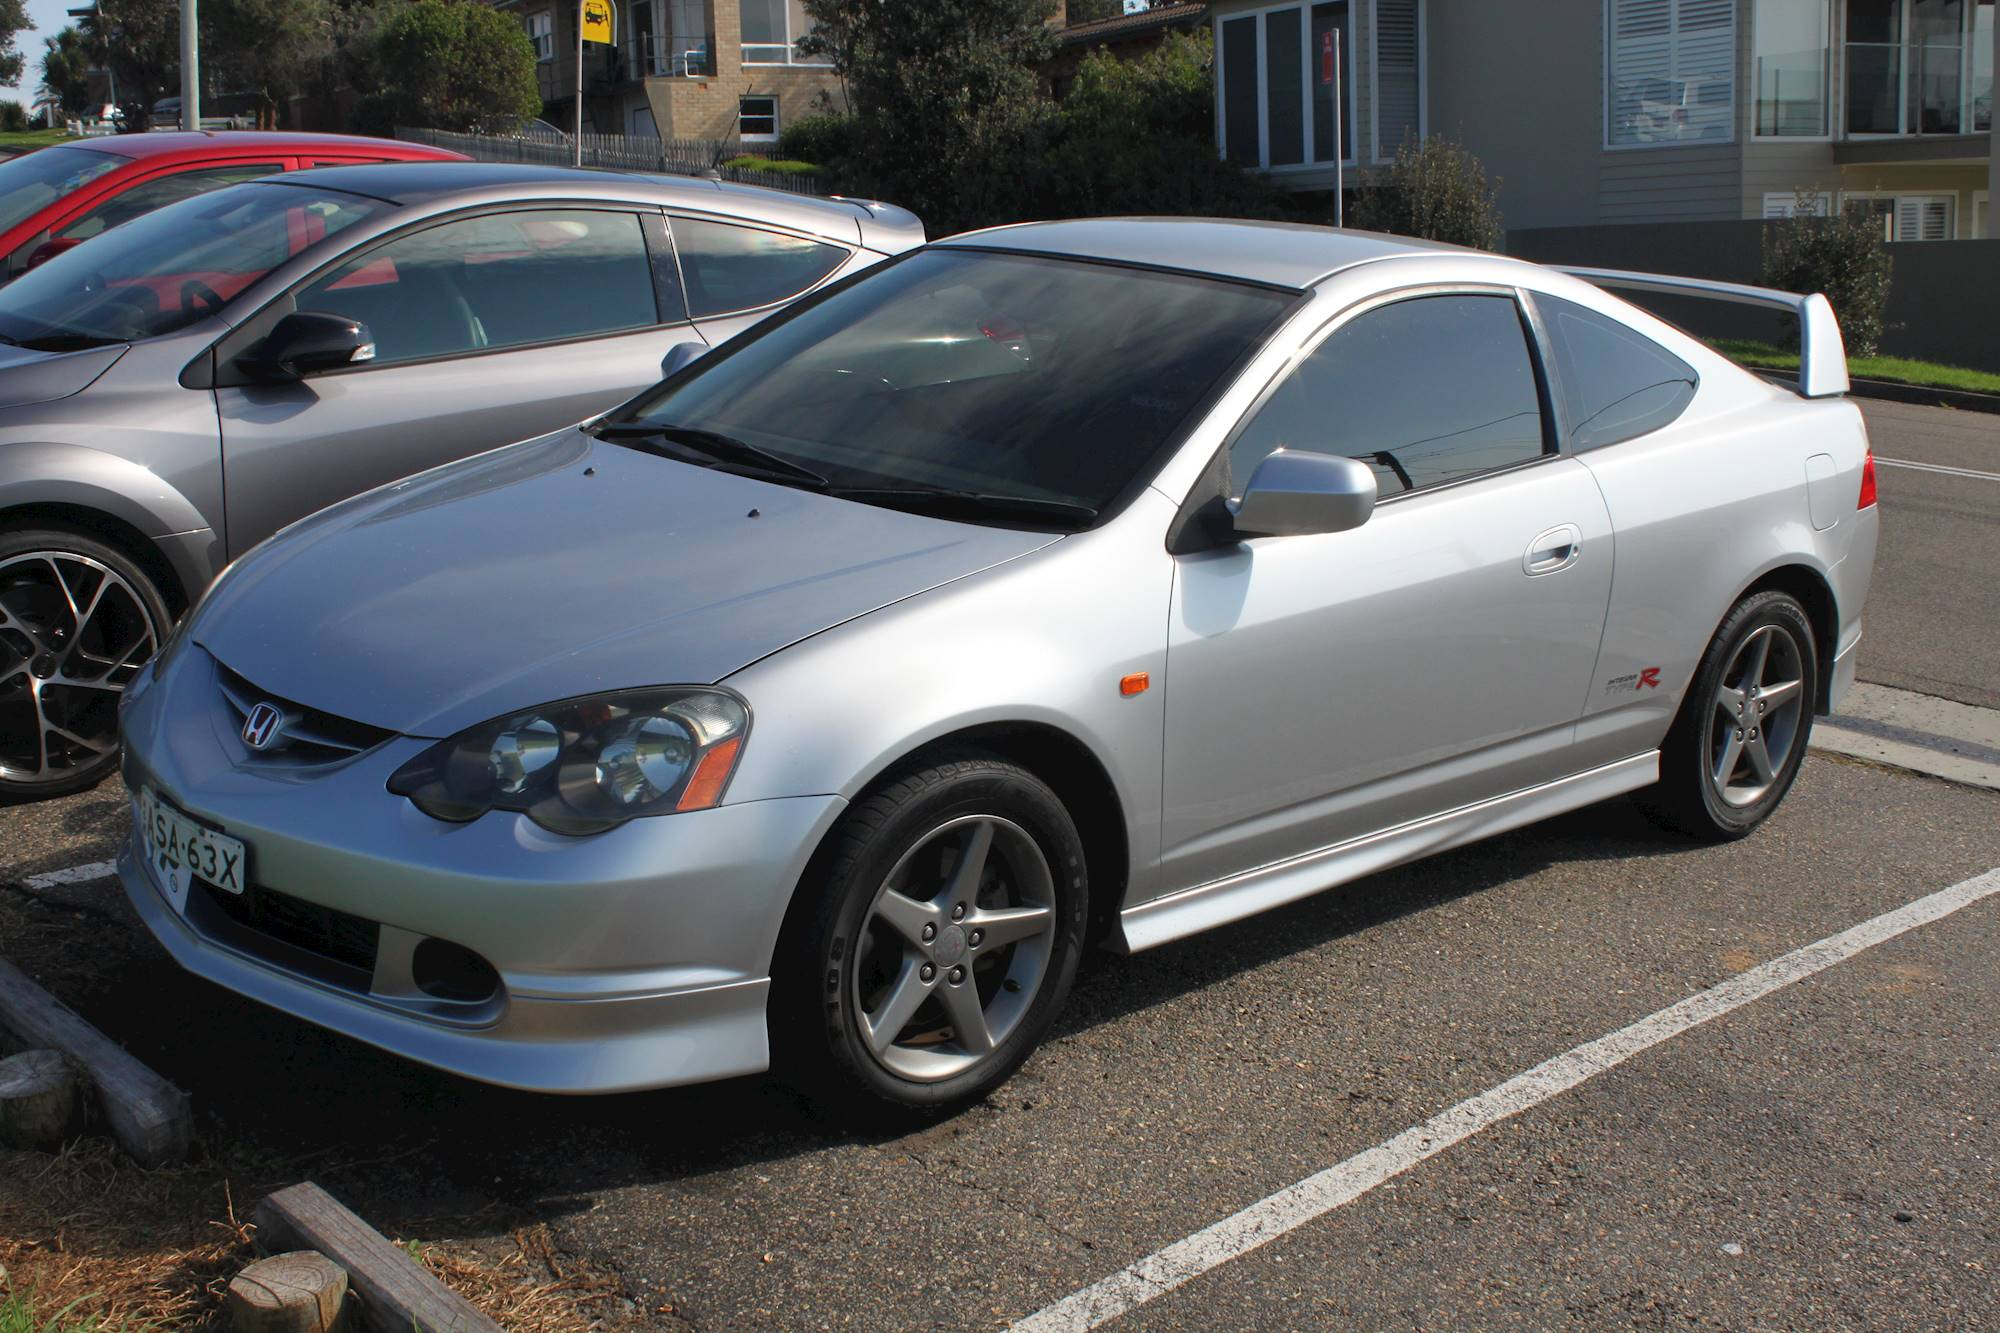 2004 Acura RSX 3 Door Sport Coupe Automatic